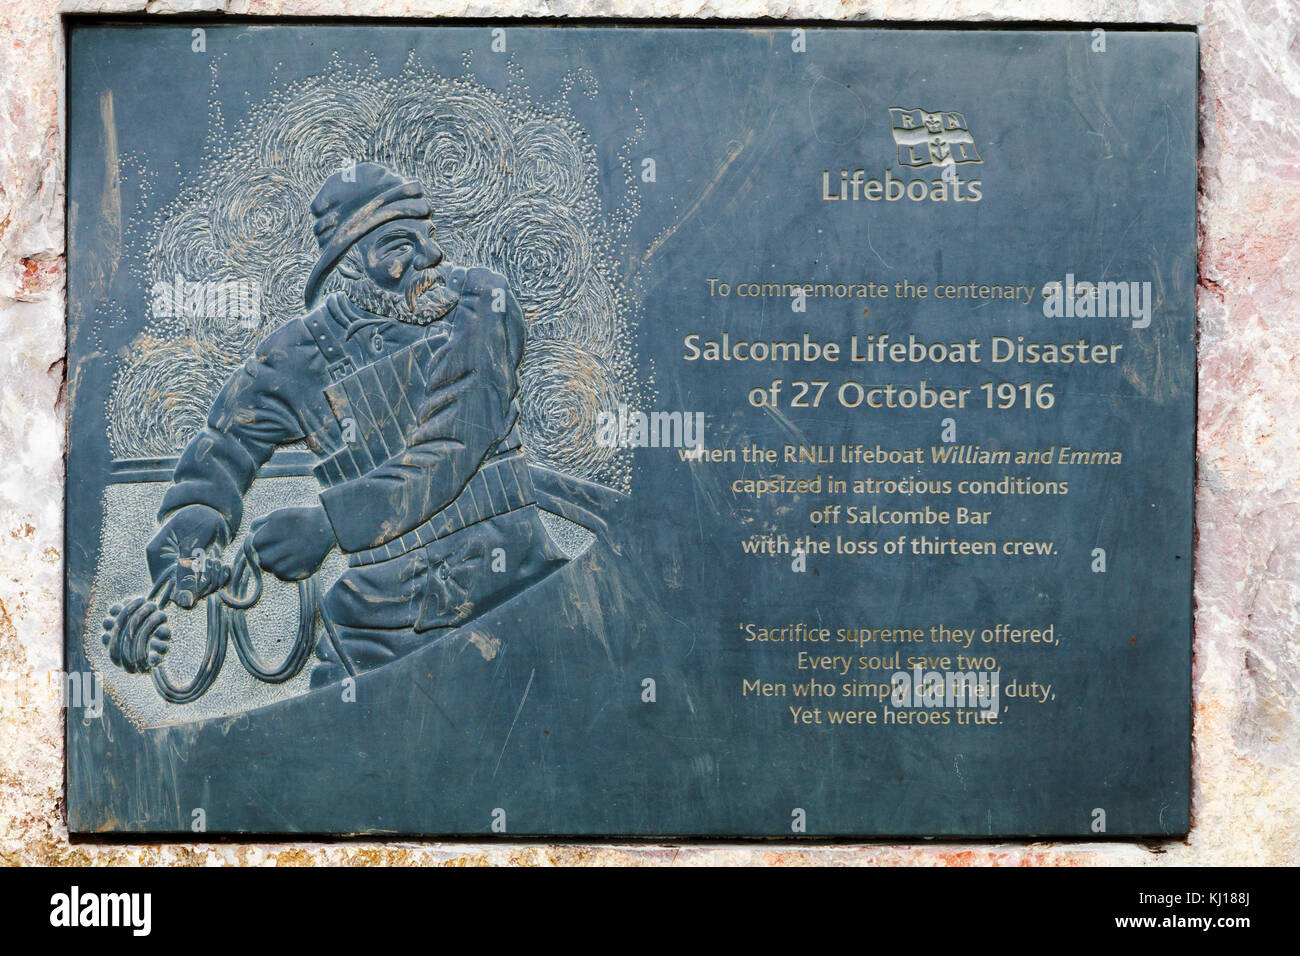 Carved slate commemorative plaque of the centenary of rge 1916 Salcombe Lifeboat Disaster on the cliff of Sharp - Stock Image